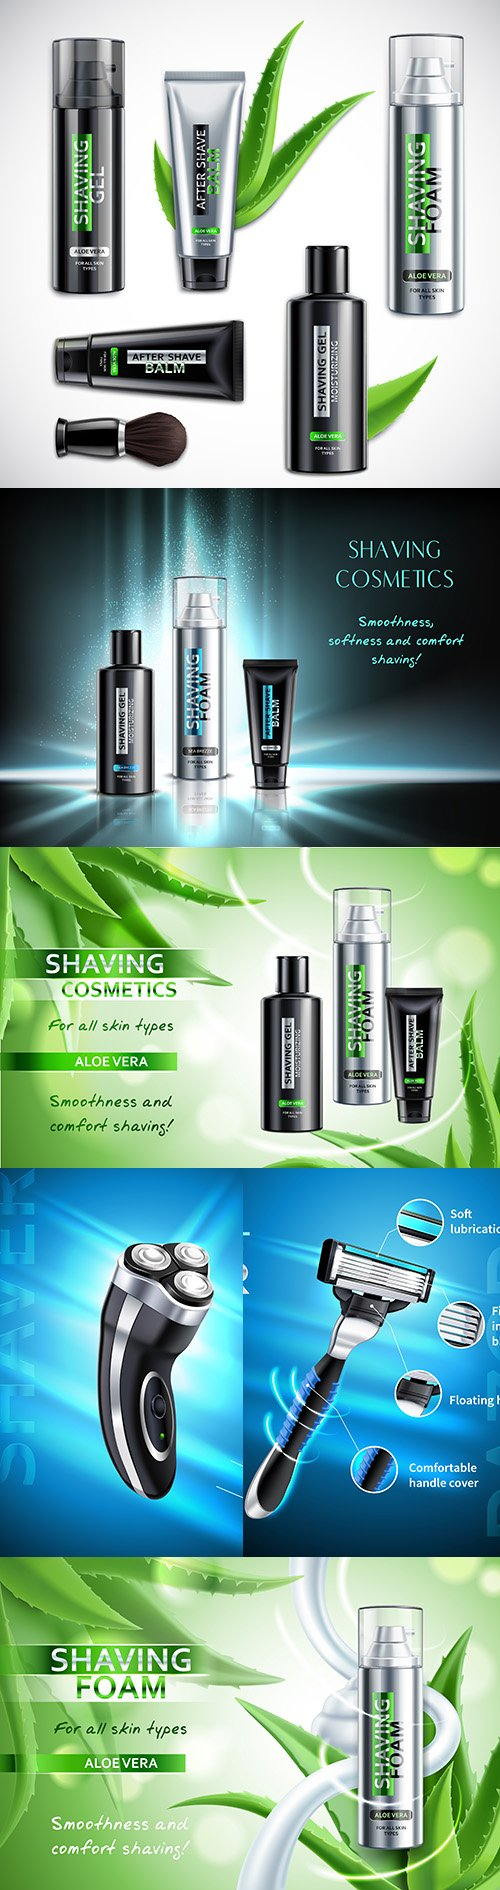 Male cosmetics and shaving products realistic illustrations